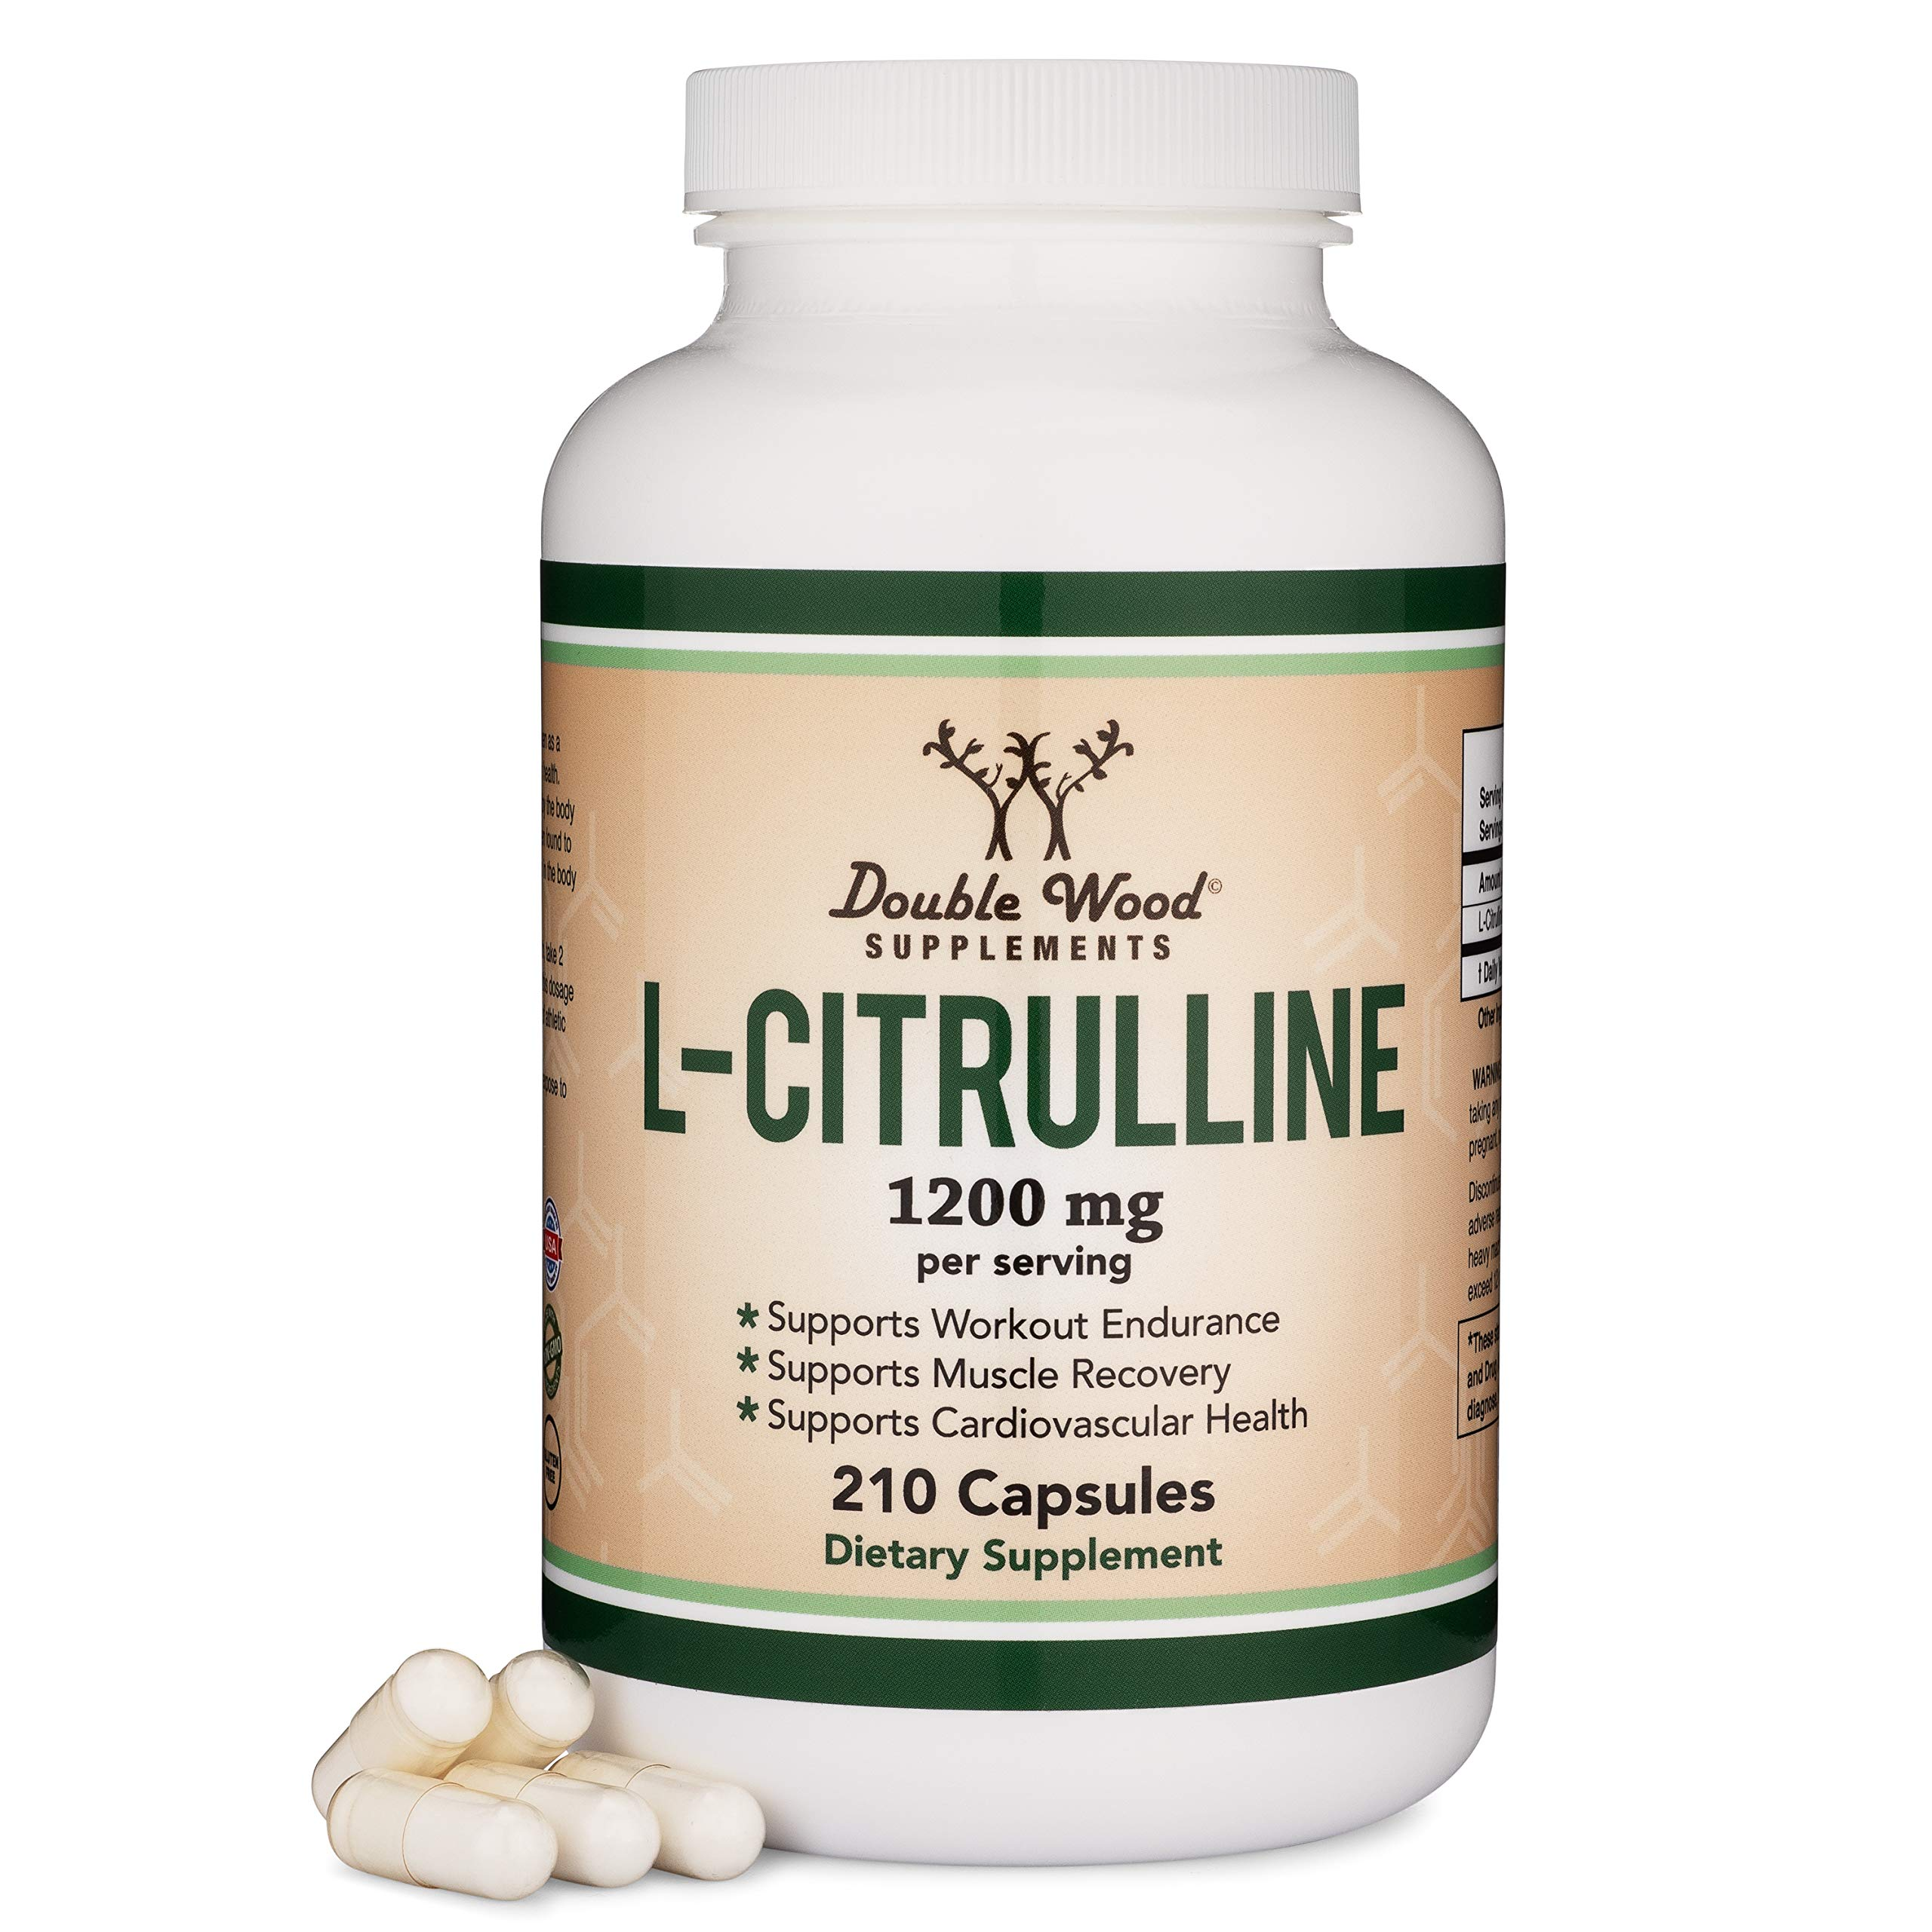 L Citrulline Capsules 1,200mg Per Serving, 210 Count (L-Citrulline Increases Levels of L-Arginine and Nitric Oxide) Muscle Recovery Supplement - Improve Muscle Pump by Double Wood Supplements by Double Wood Supplements